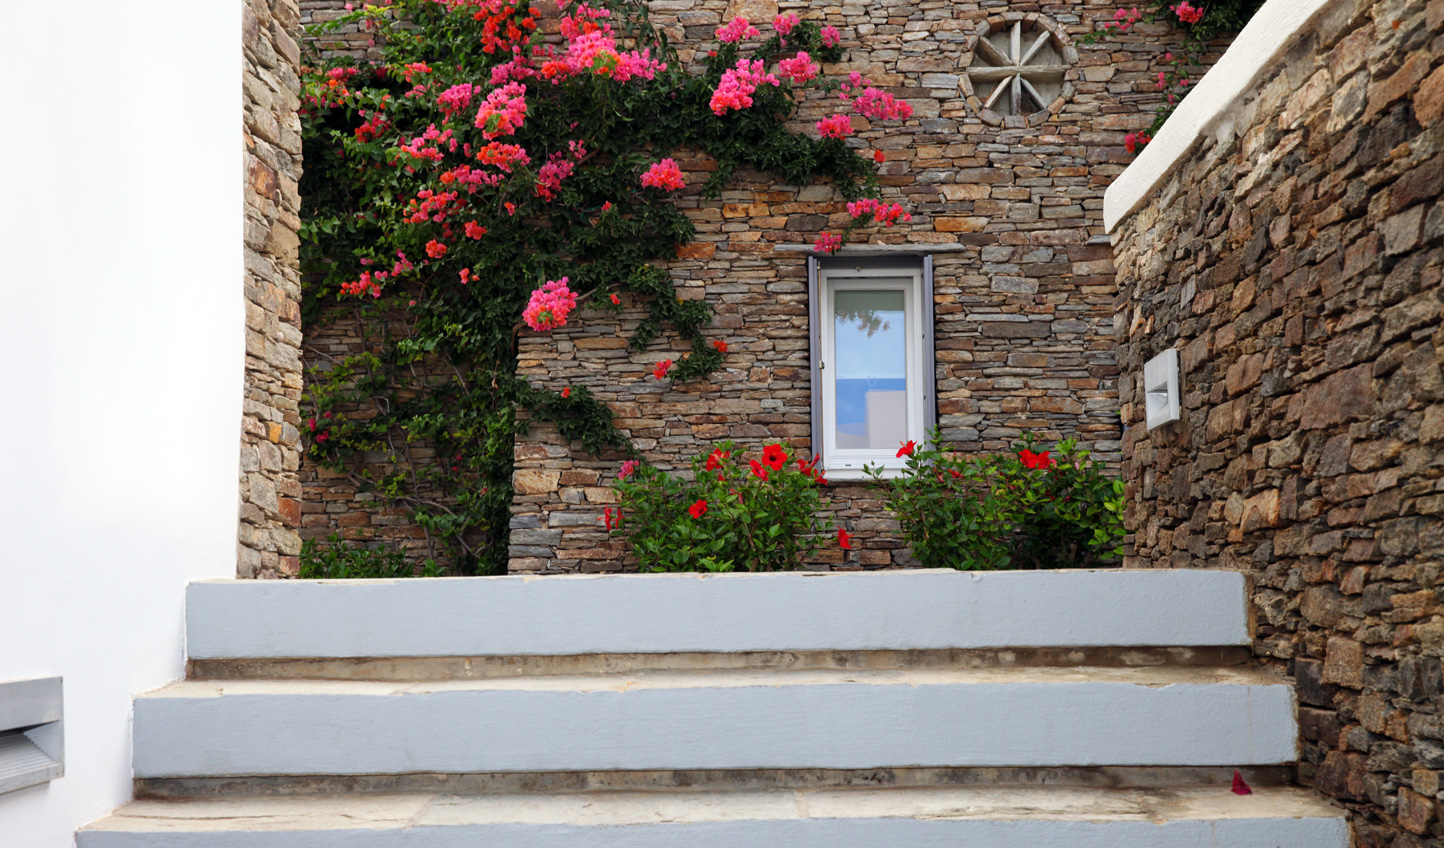 Quaint stone buildings and brightly coloured flowers await